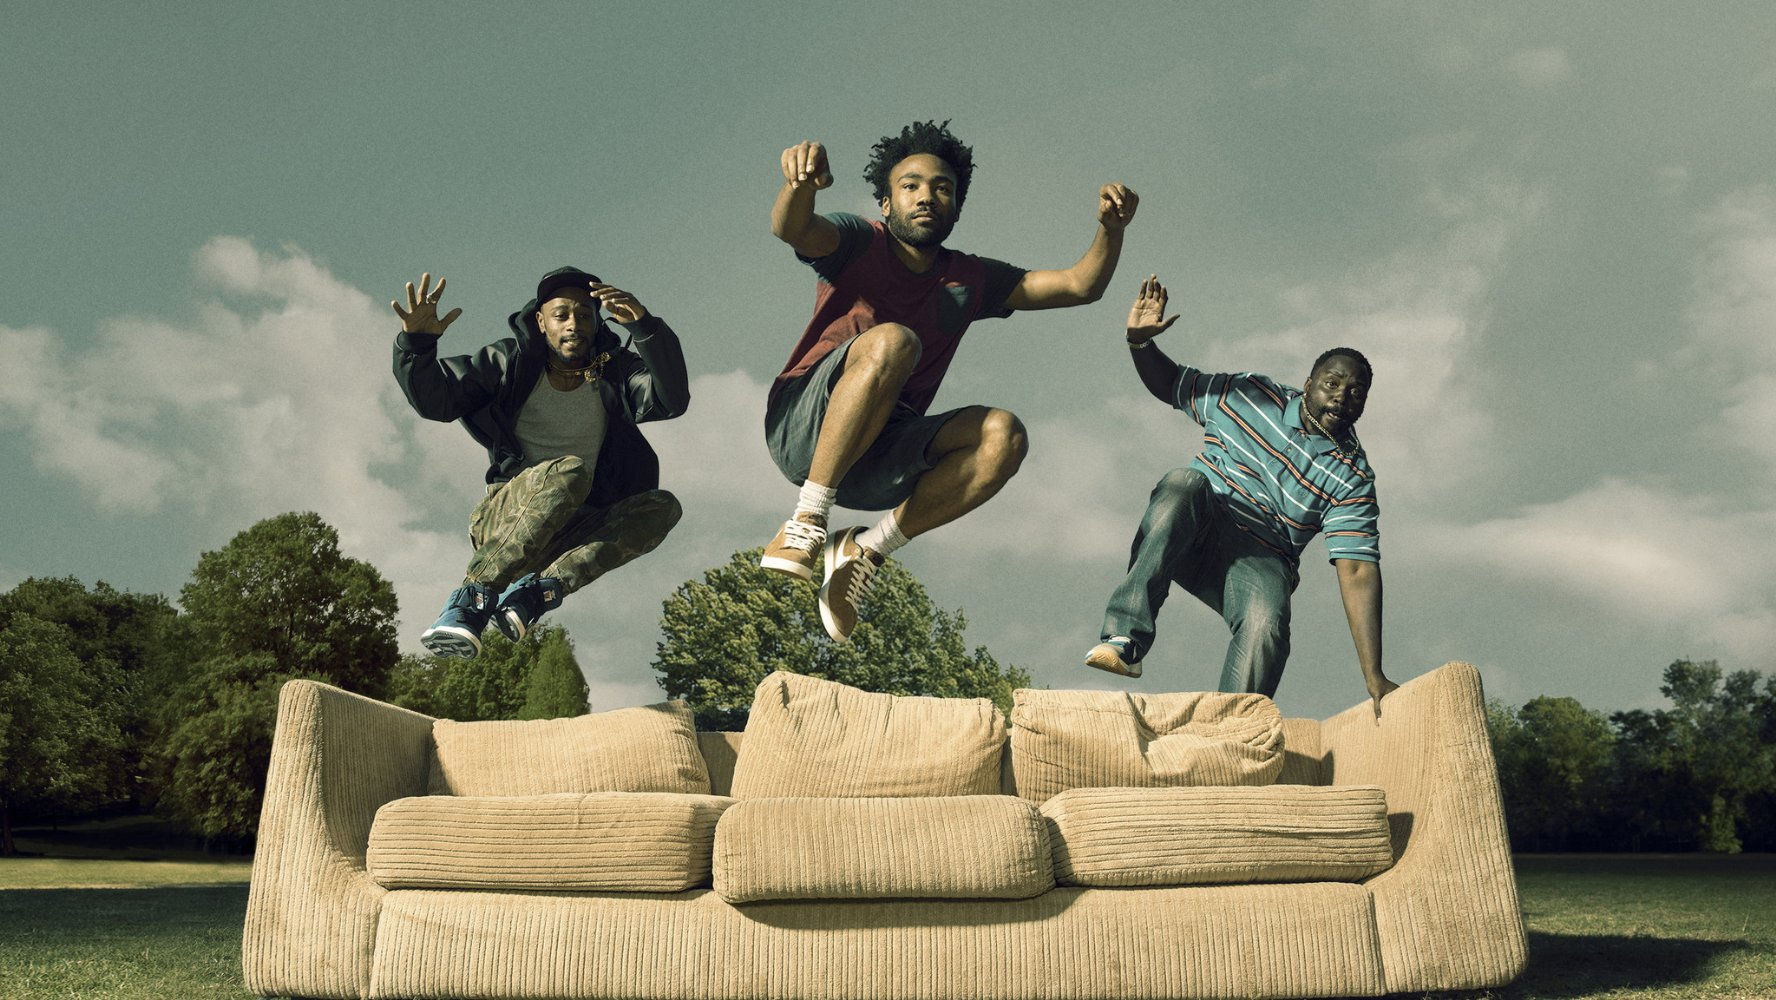 Golden Globes: What is Atlanta, and why should you watch it?